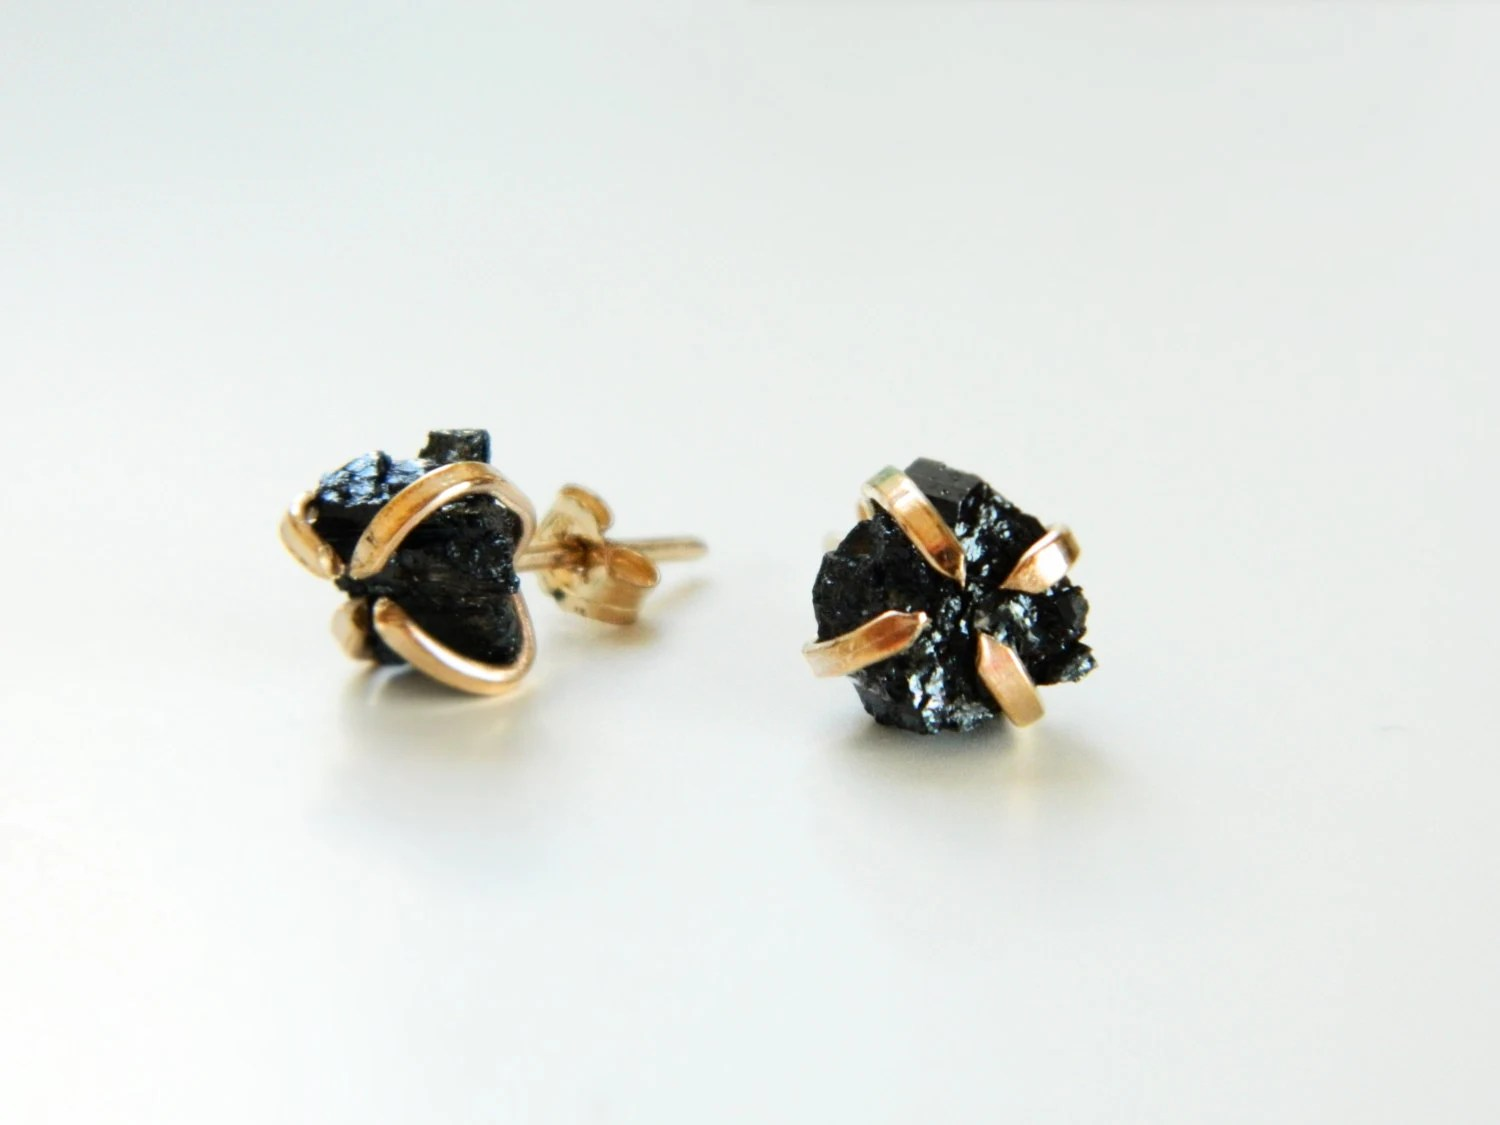 Black Tourmaline Earrings Tourmaline Stud Earrings